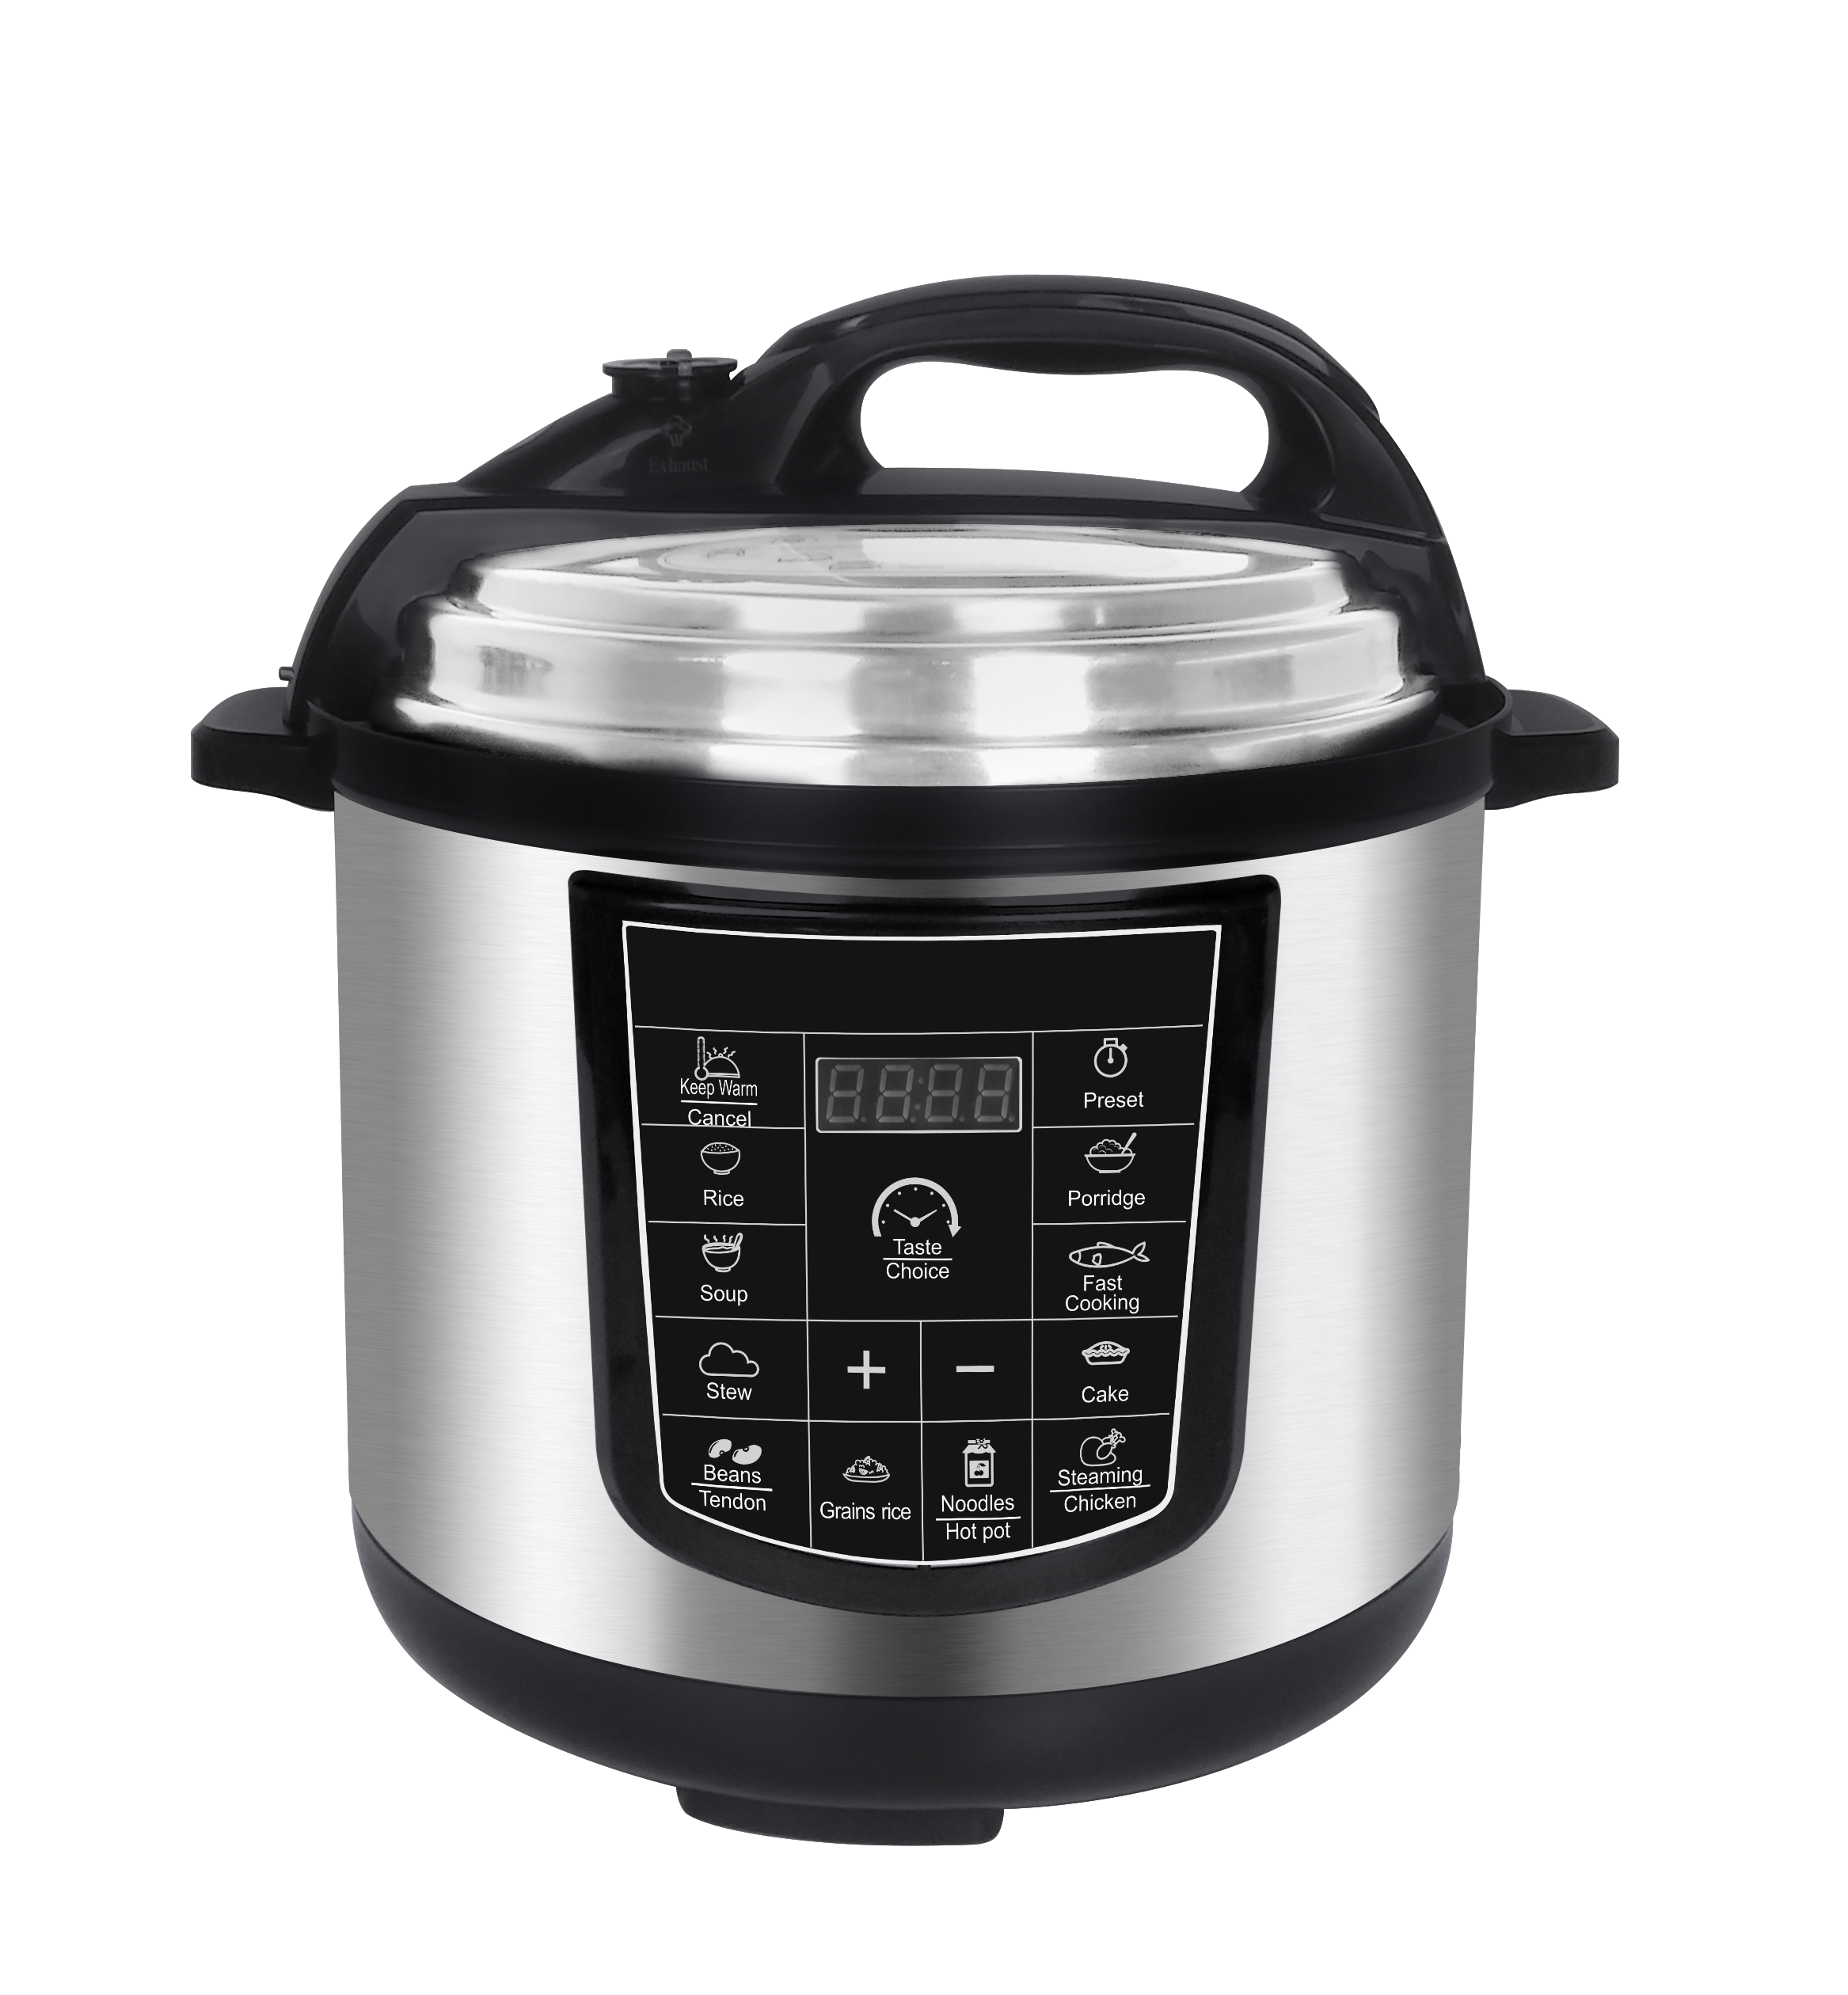 5Qt Non-stick Coating Inner Pot Cooking Pot 14-in-1 Multipurpose Cooker Electric Pressure Cooker Price